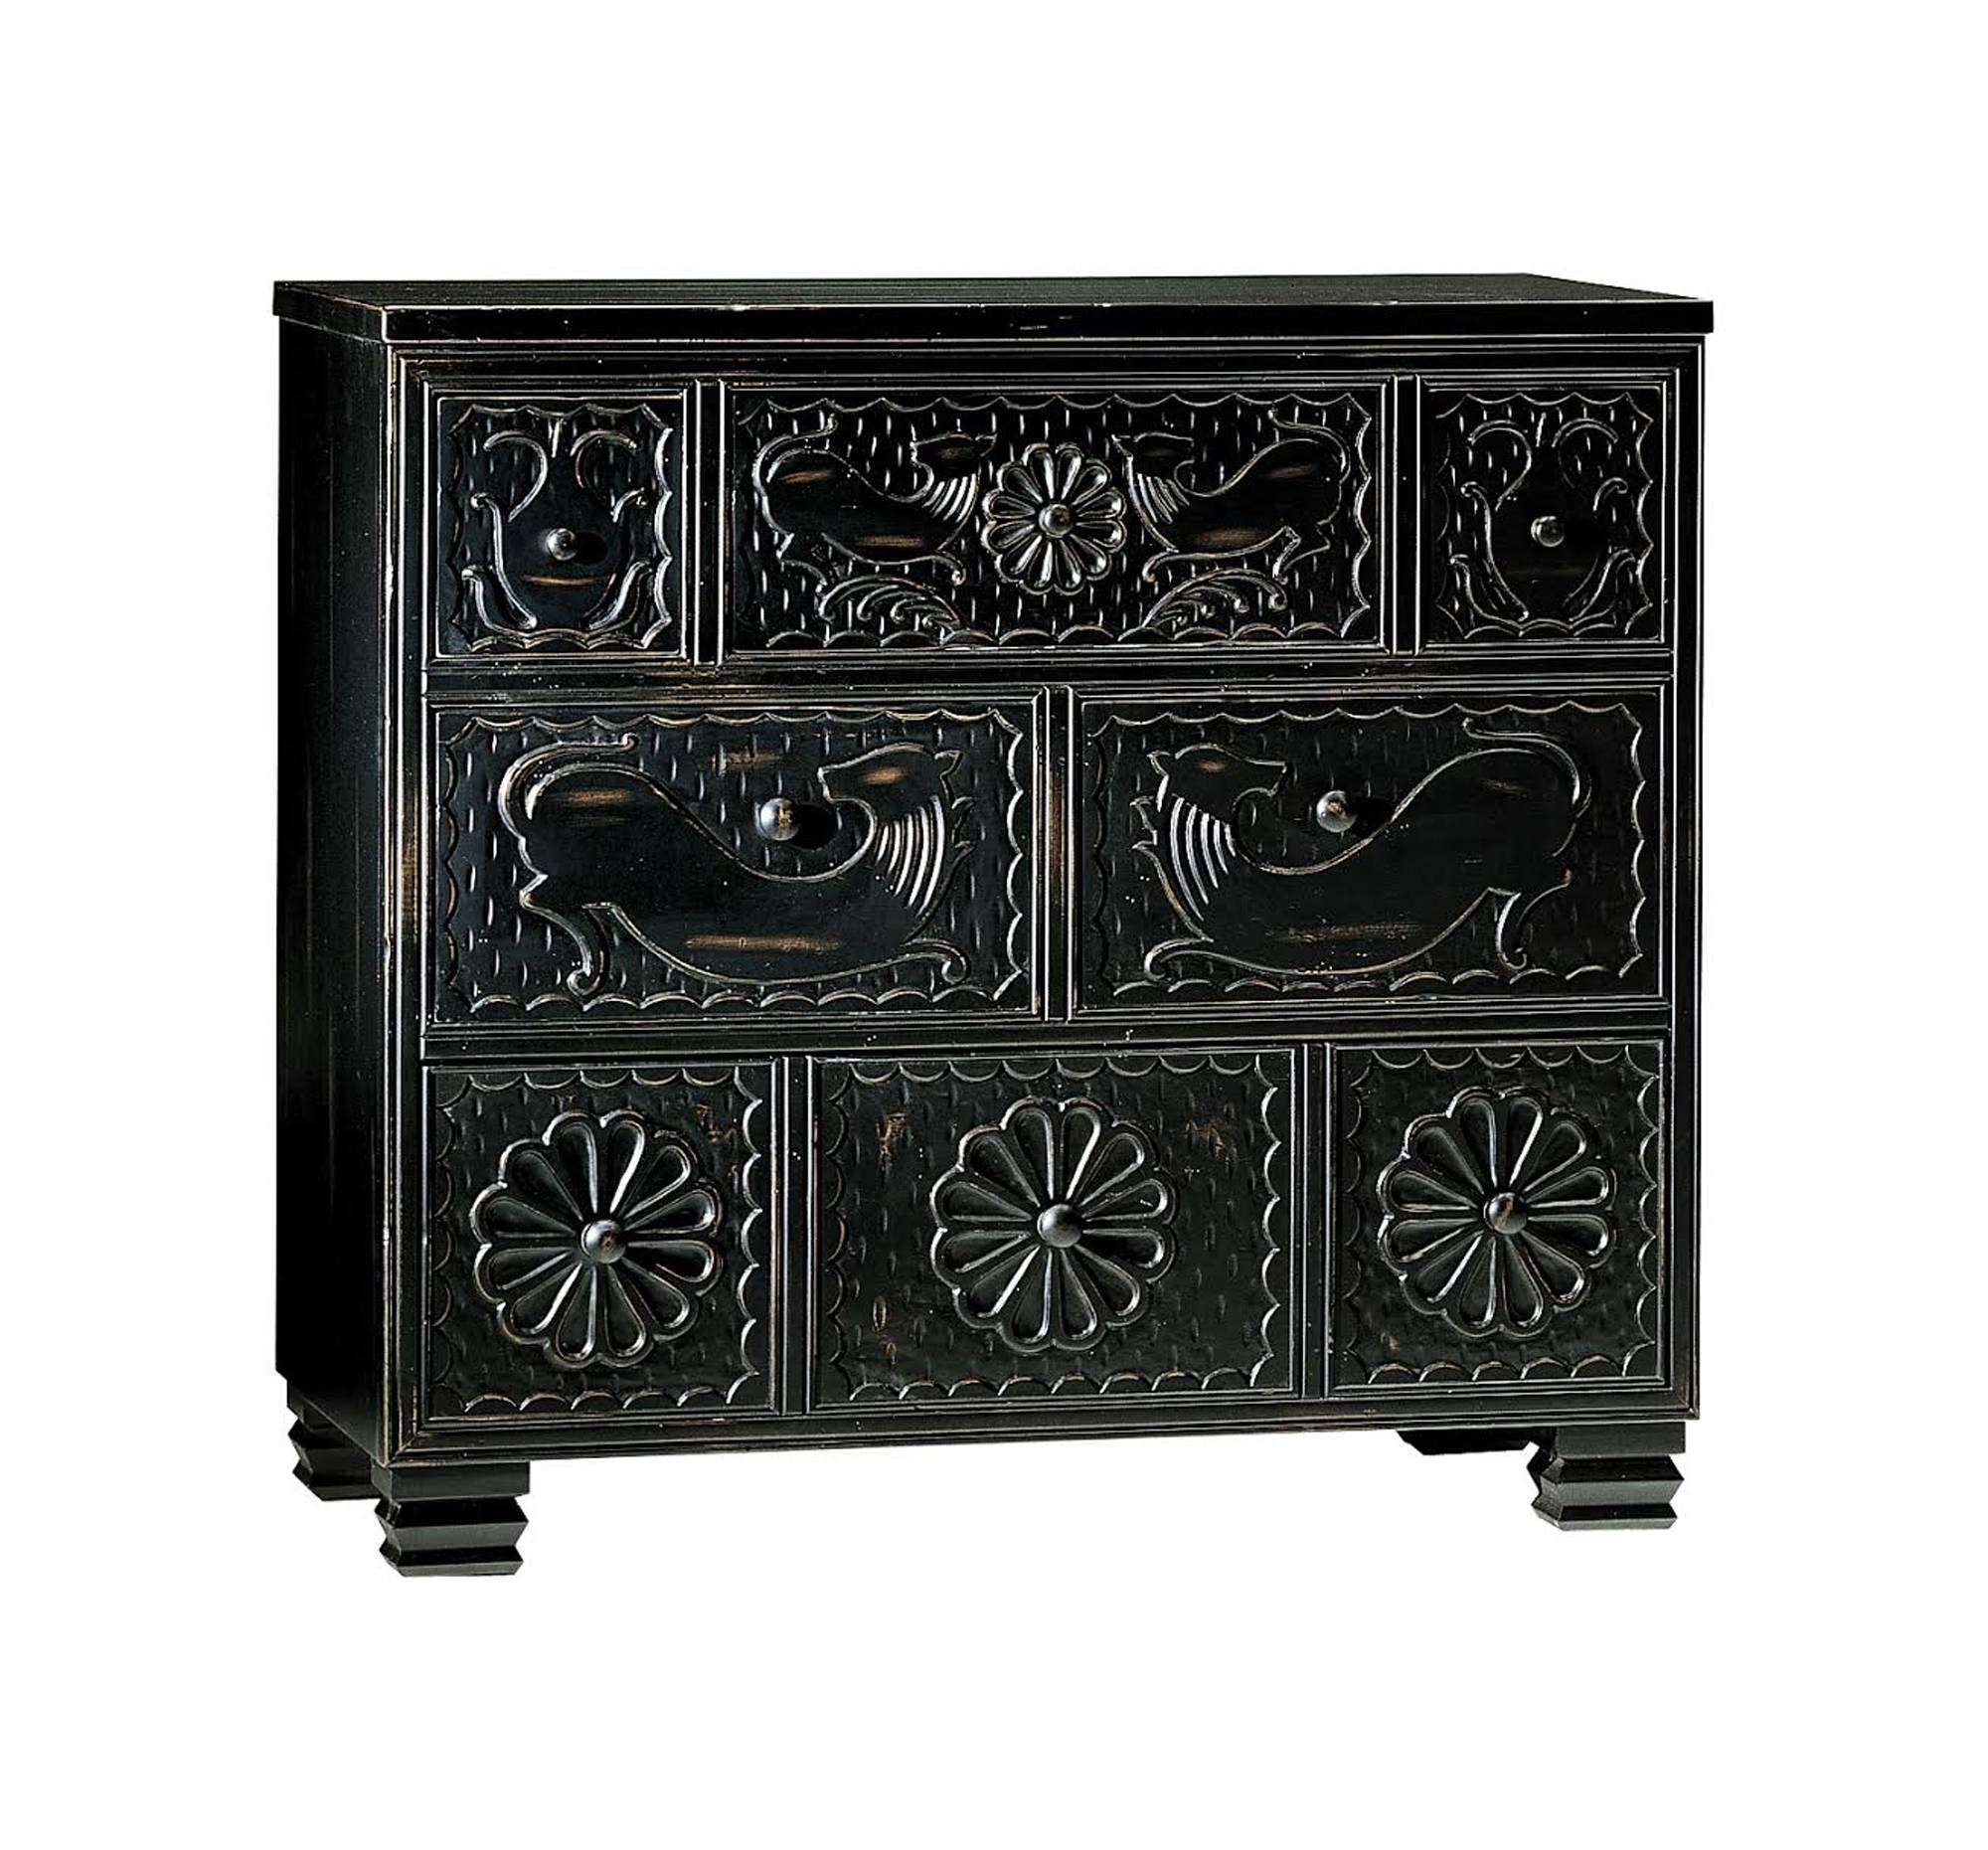 Hickory Chair's solid maple chest features hand carved pomegranate, rosette and lion motifs, symbols in use since Byzantine times. It was adapted using a ceremonial chest at the Museum of New Mexico as inspiration.